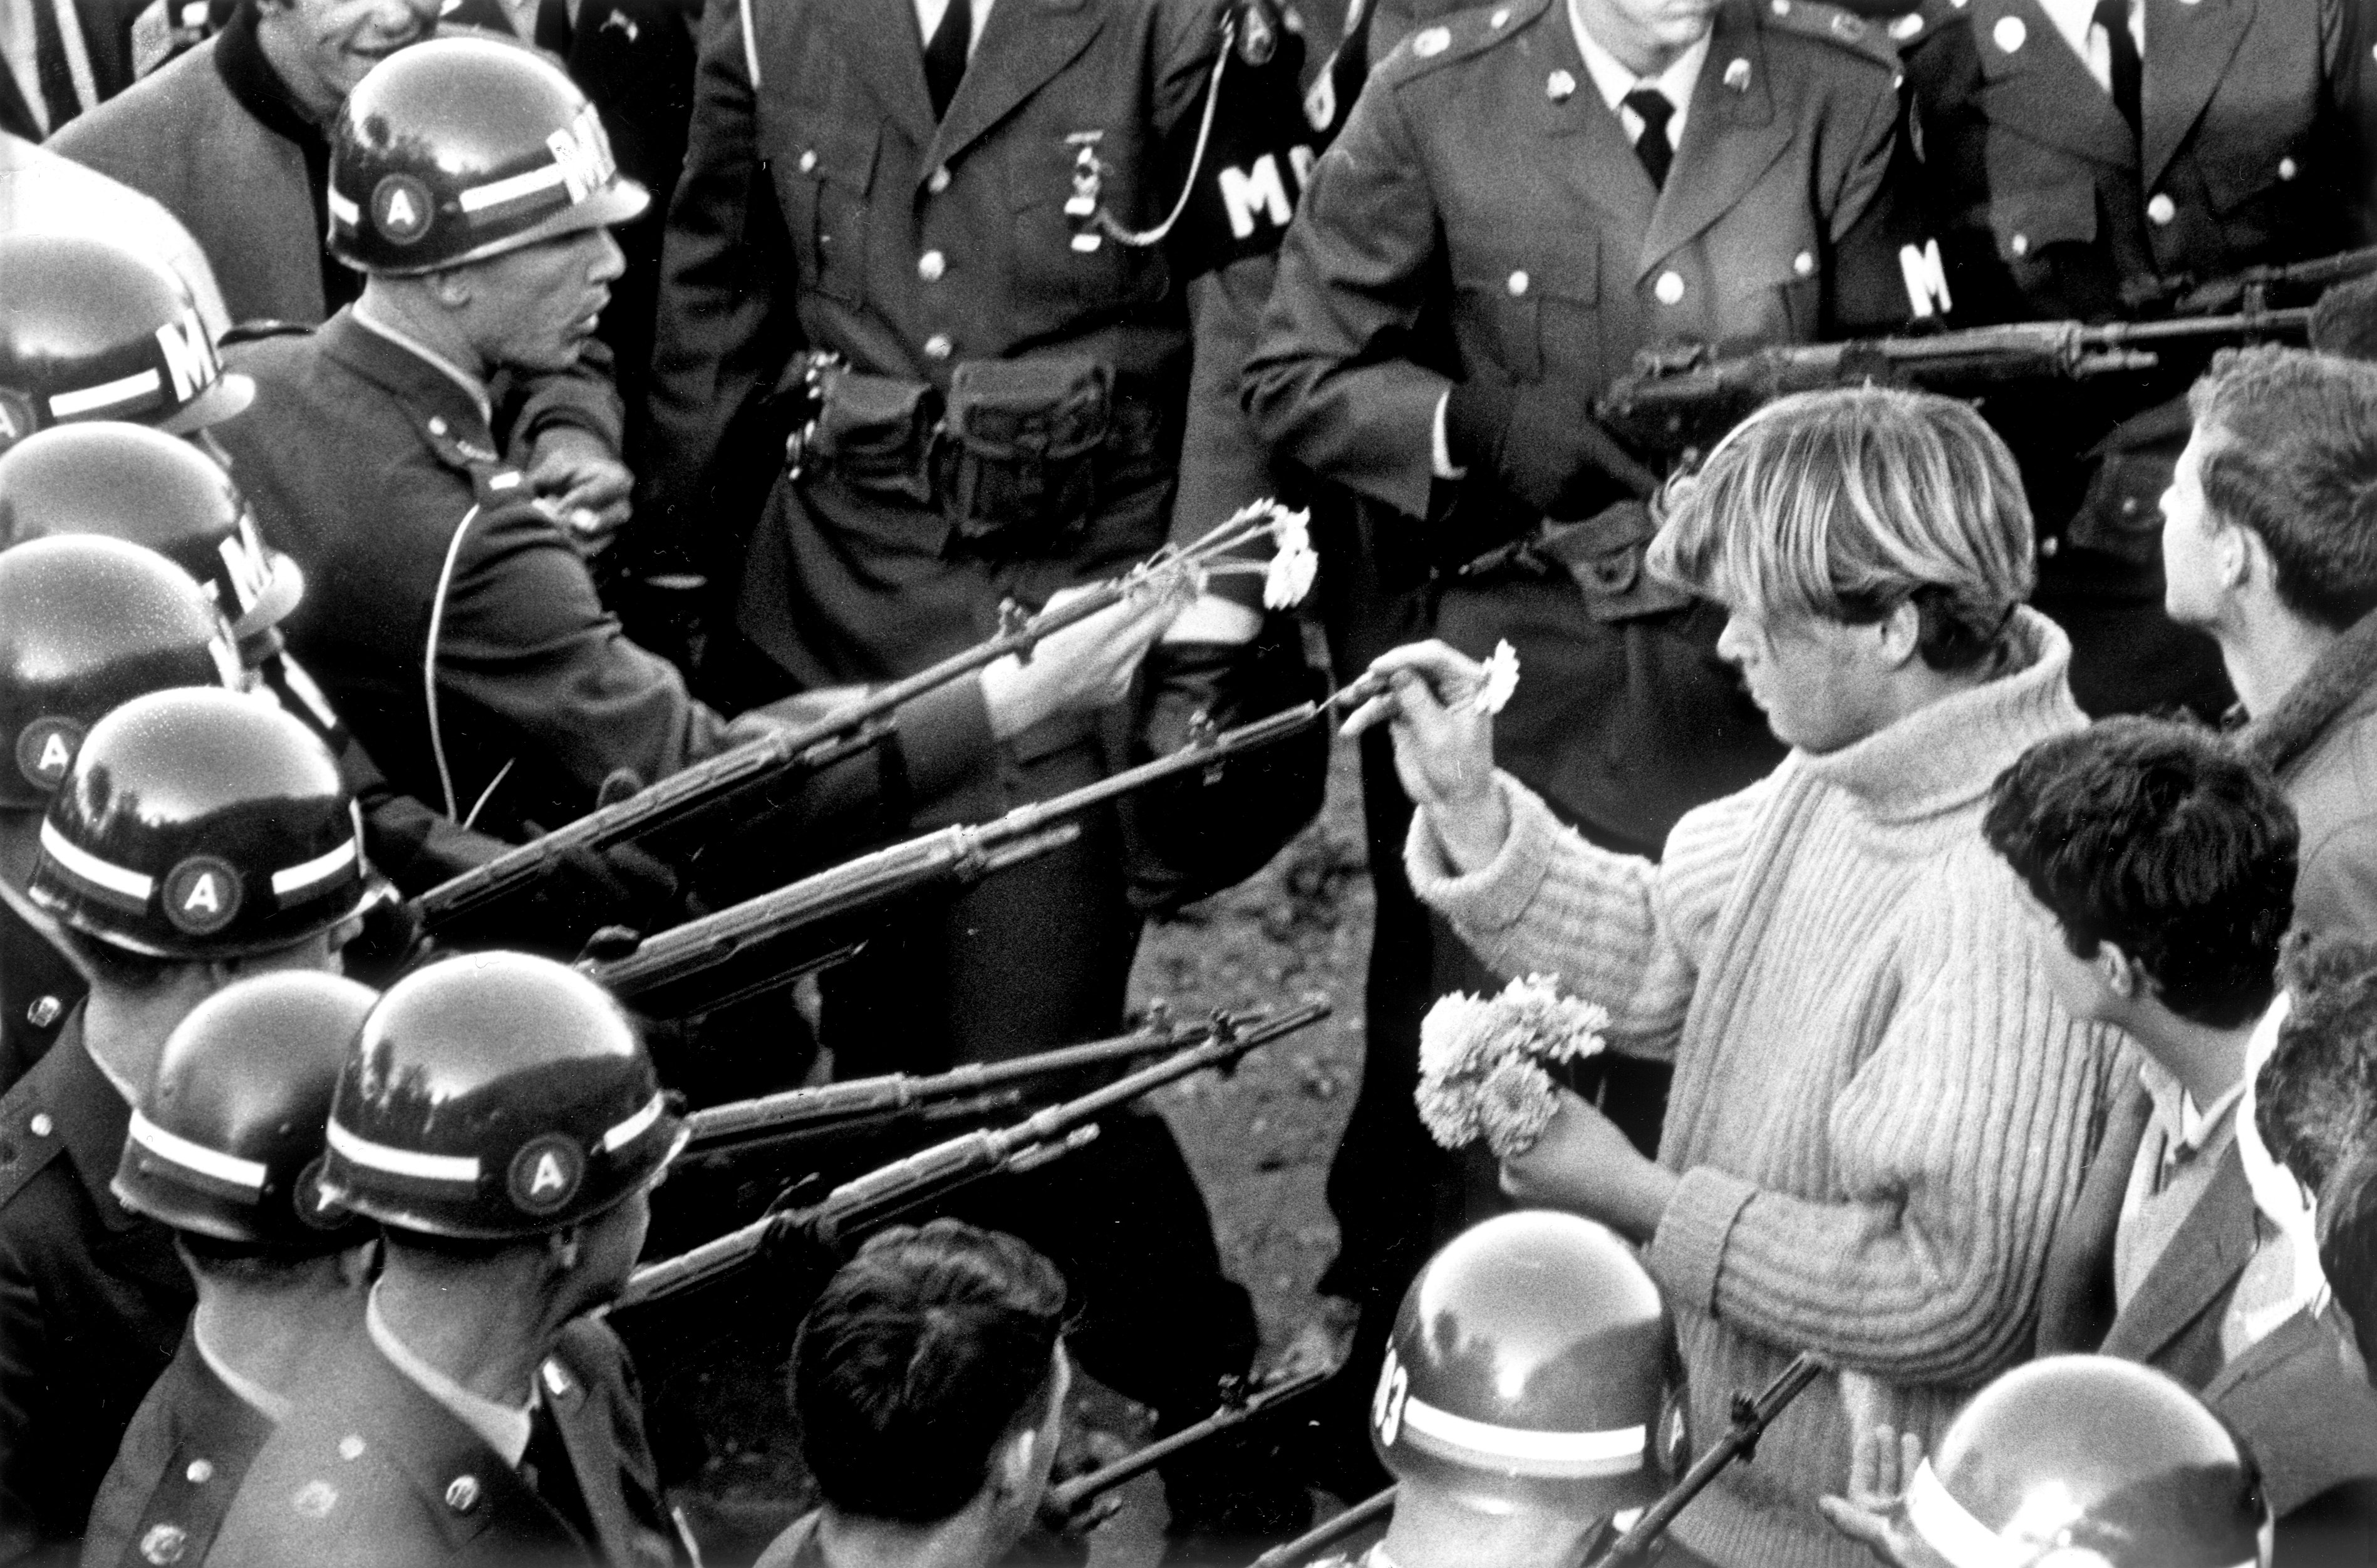 Vietnam War Protests The 1967 March On The Pentagon The Washington Post